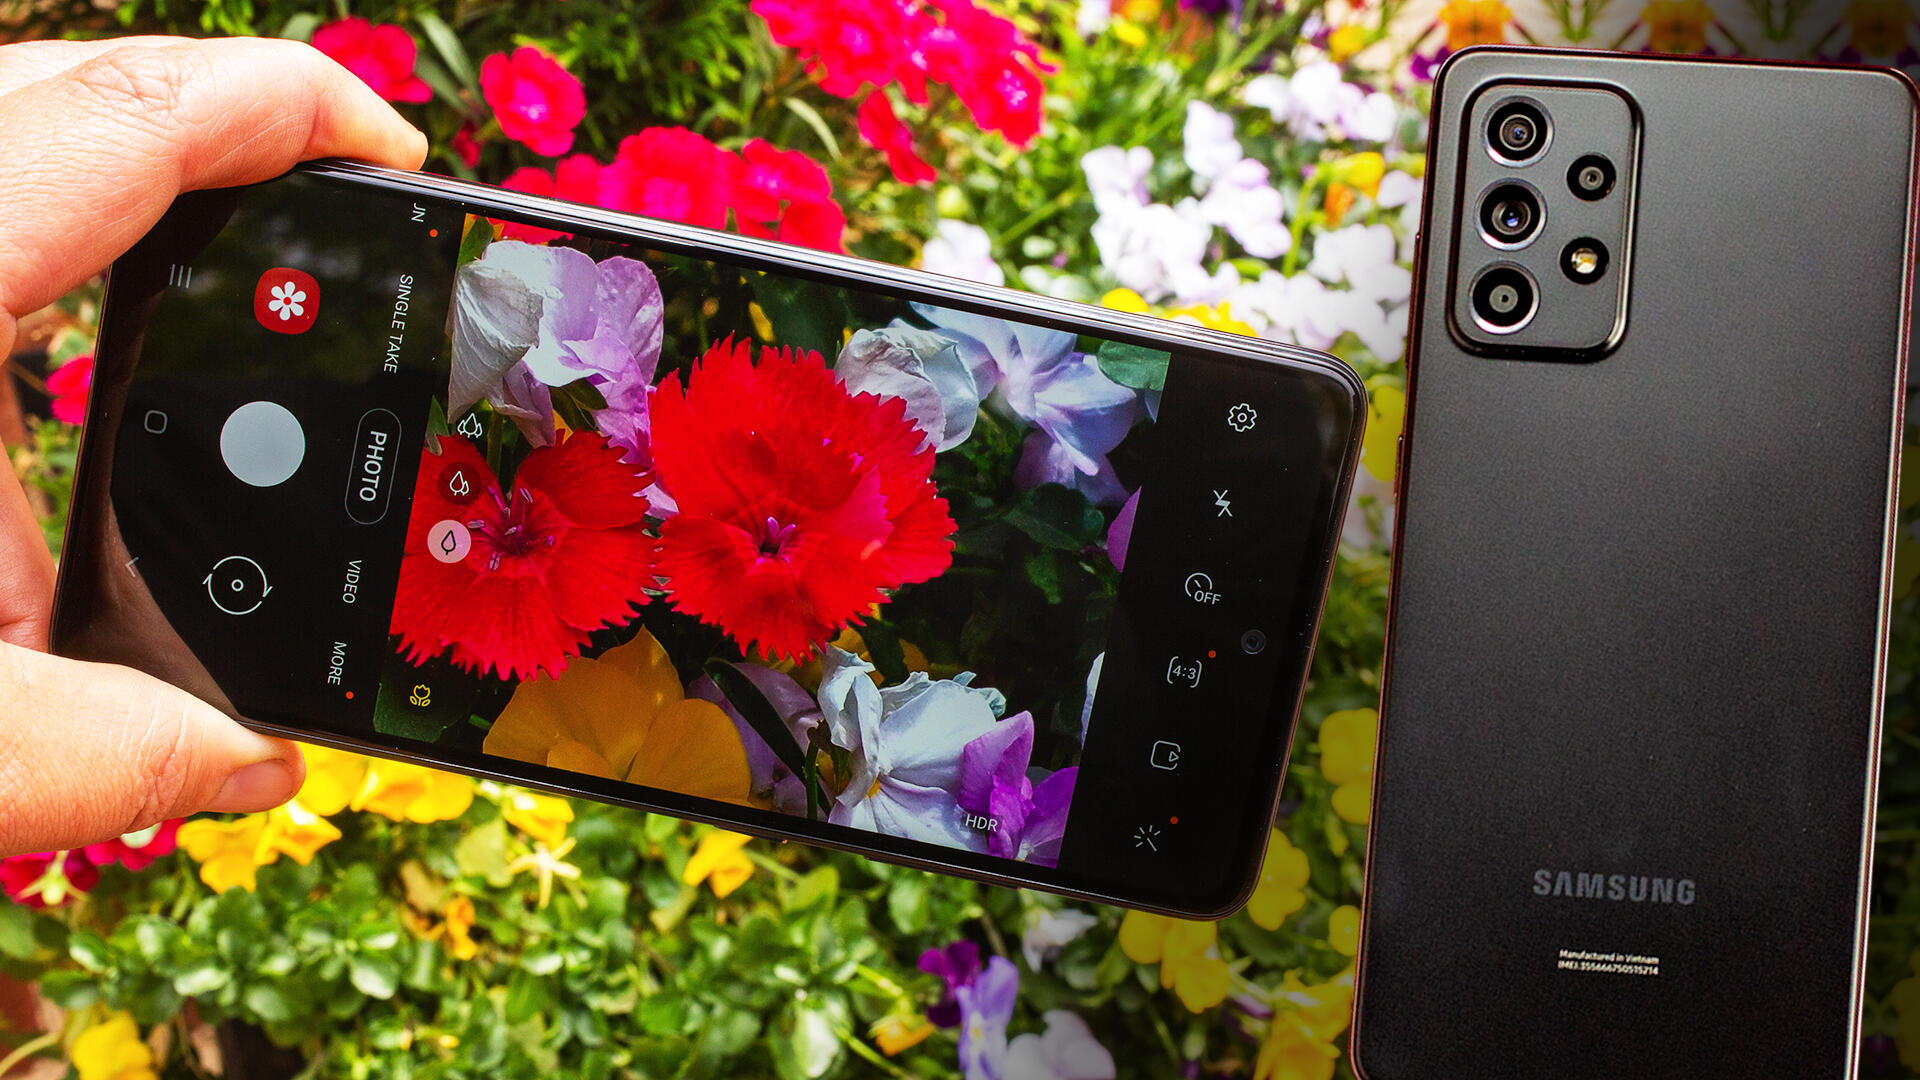 Video: Galaxy A52 5G review: A feature-packed $500 phone